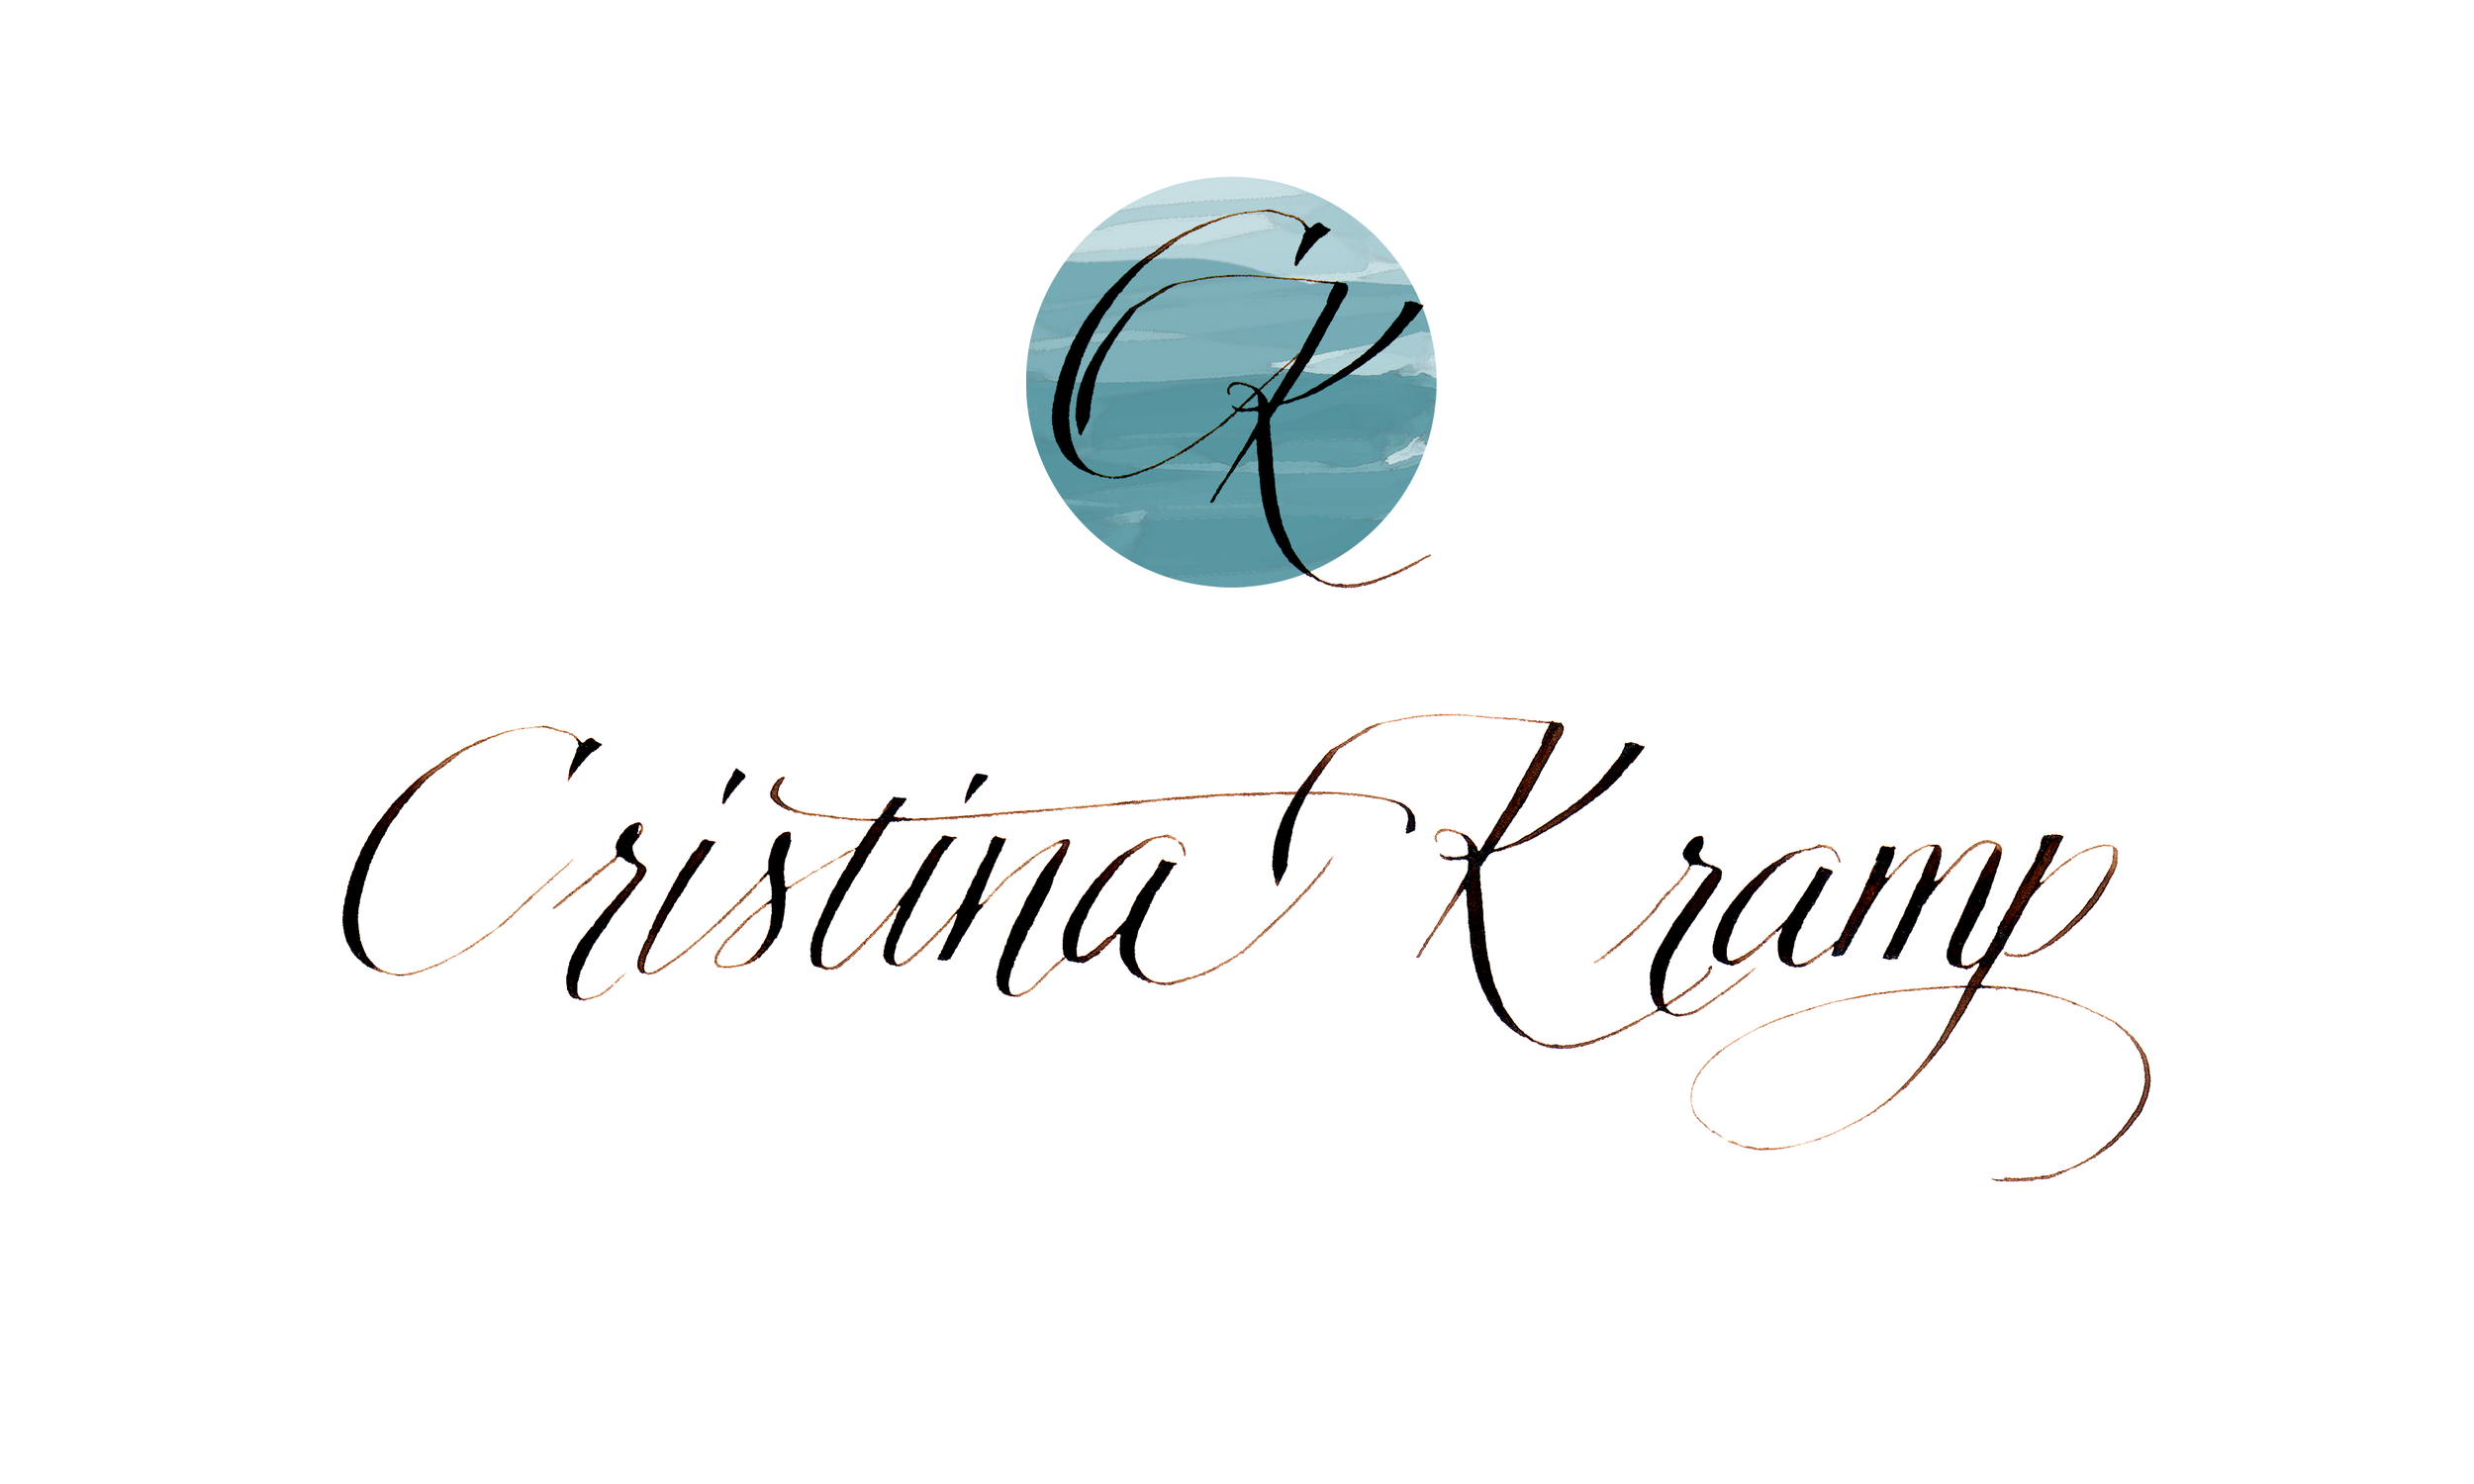 I still love the lettering of the name, but it was a bit formal and didn't fit with the vibe I was going for with my new website. Years of practice went into writing this one.